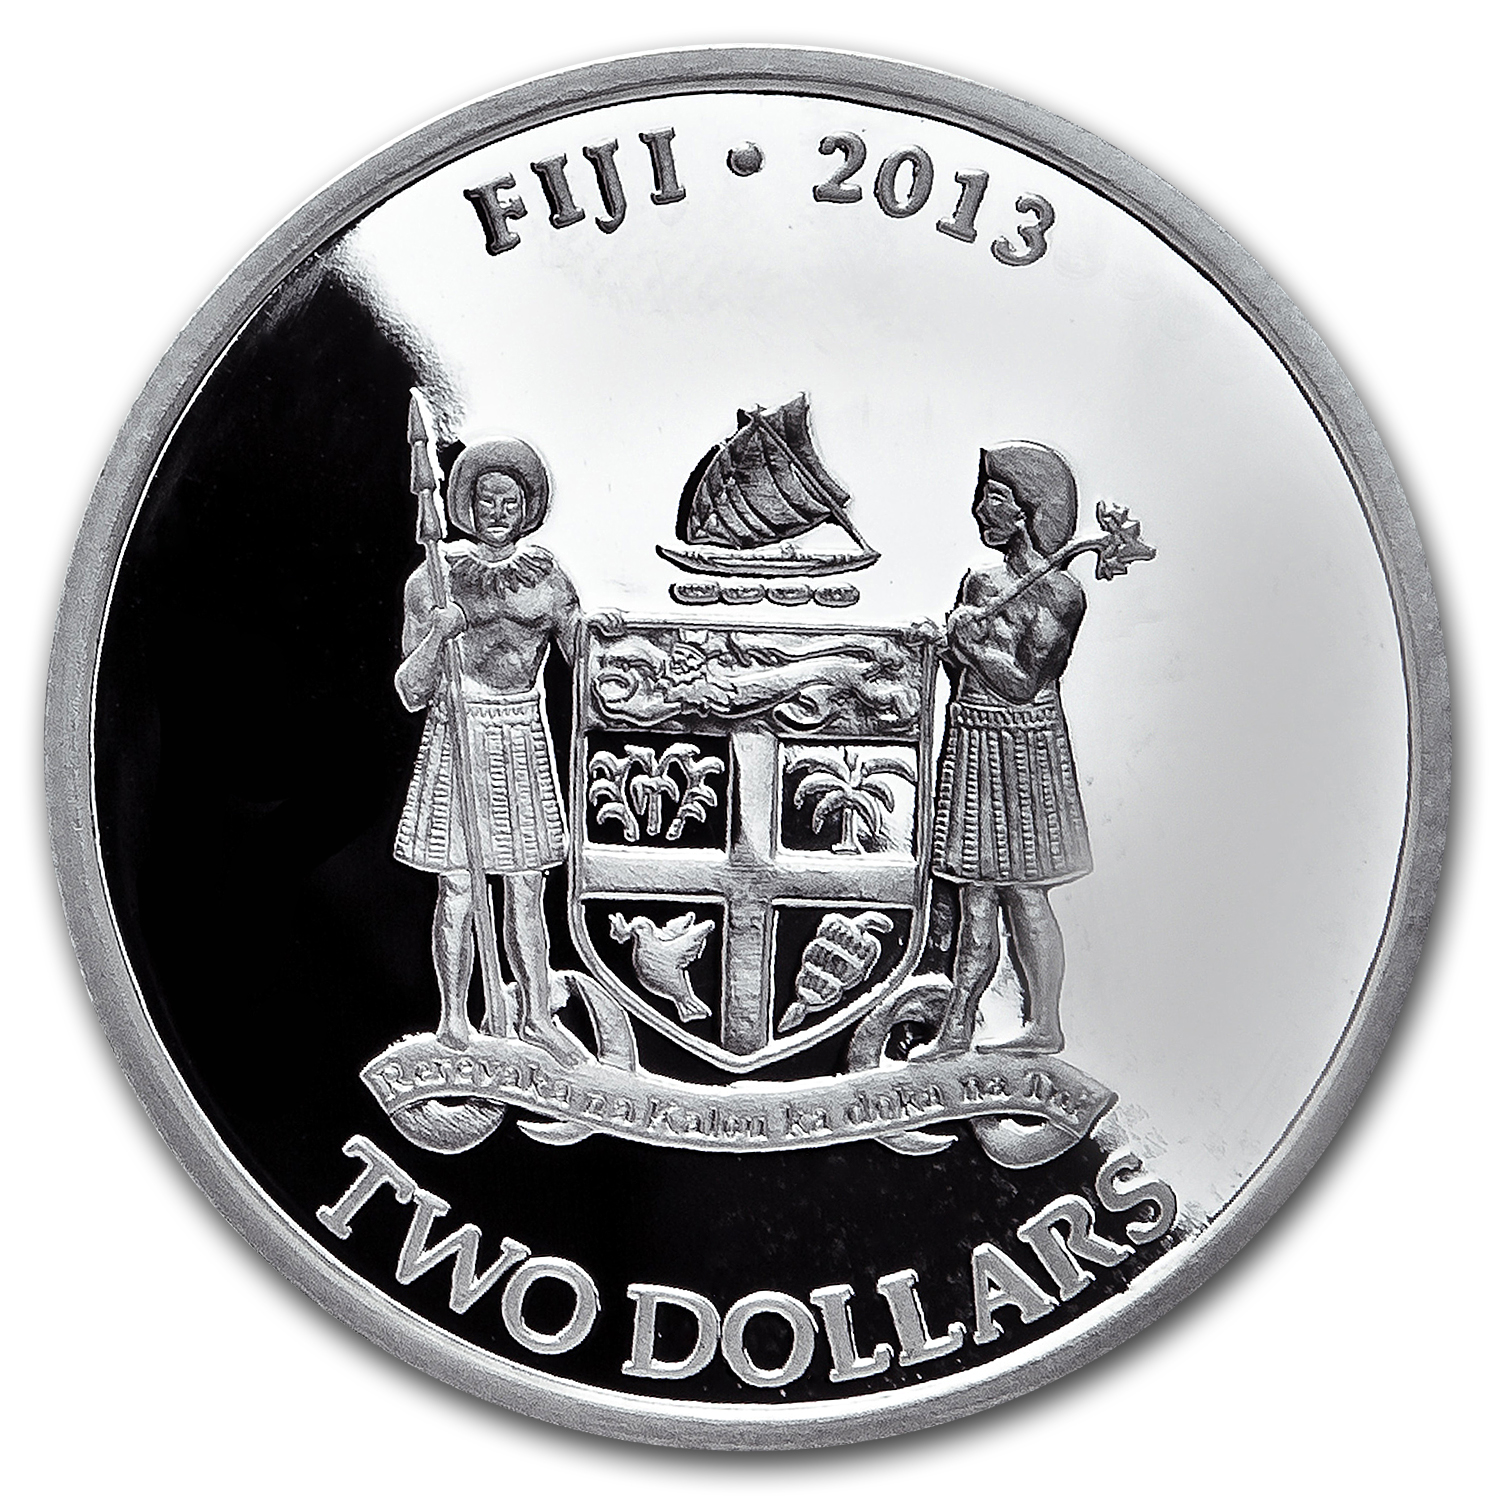 2013 1 oz Silver New Zealand Mint $2 Fiji Taku .999